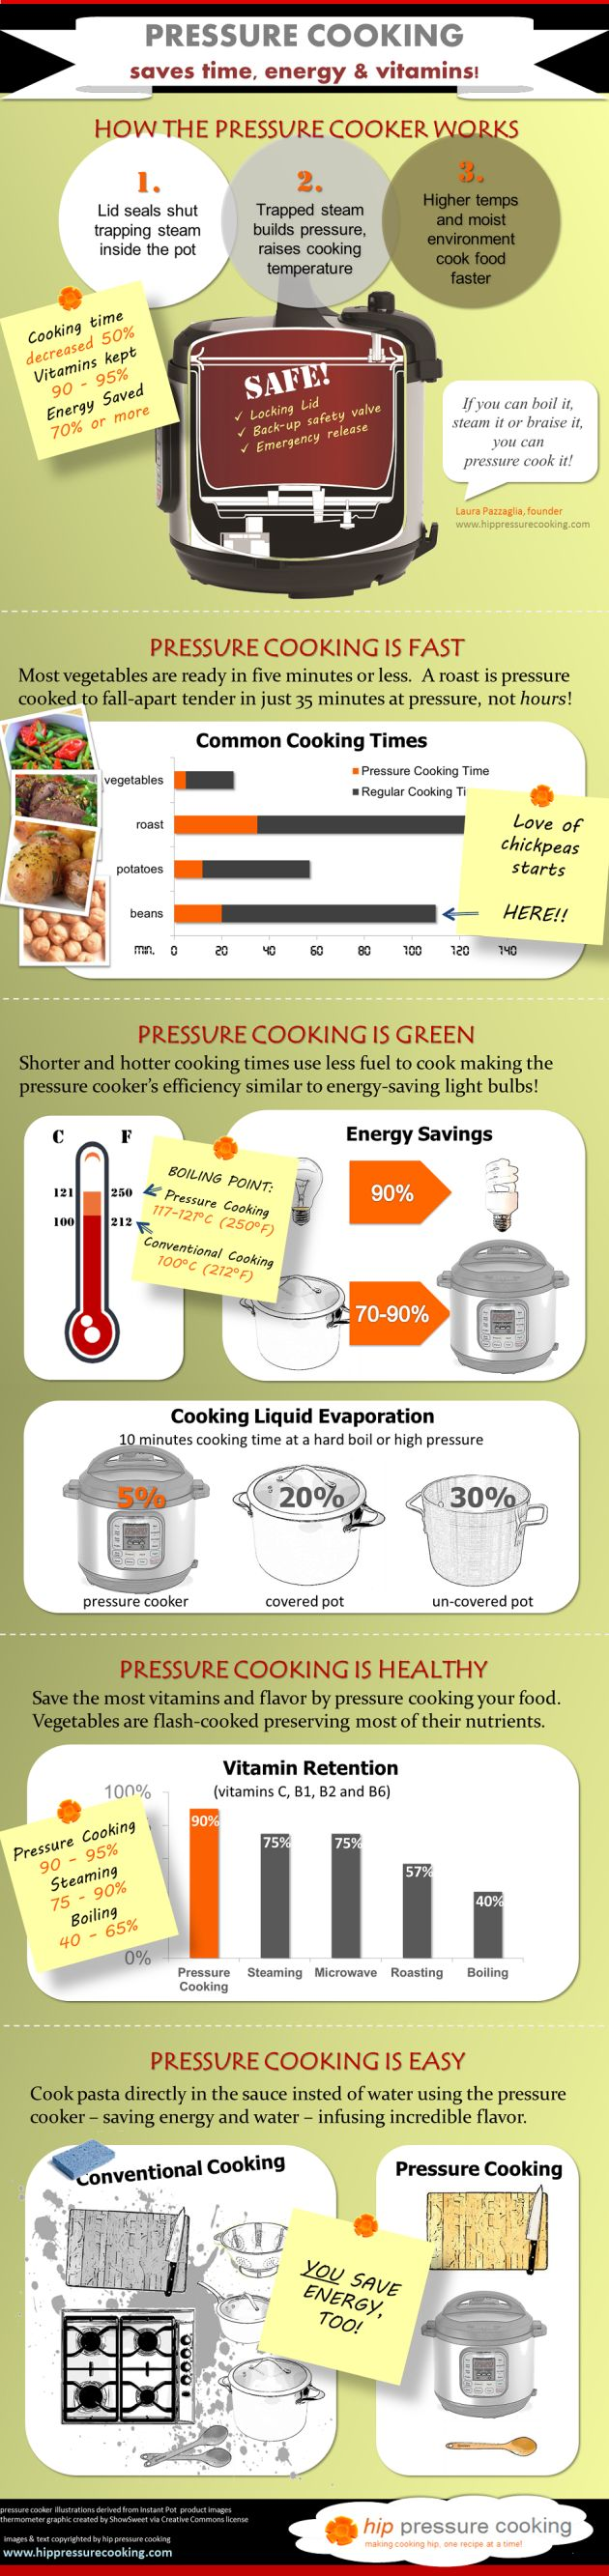 Pressure Cooker Benefits Infographic (electric pressure cooker)